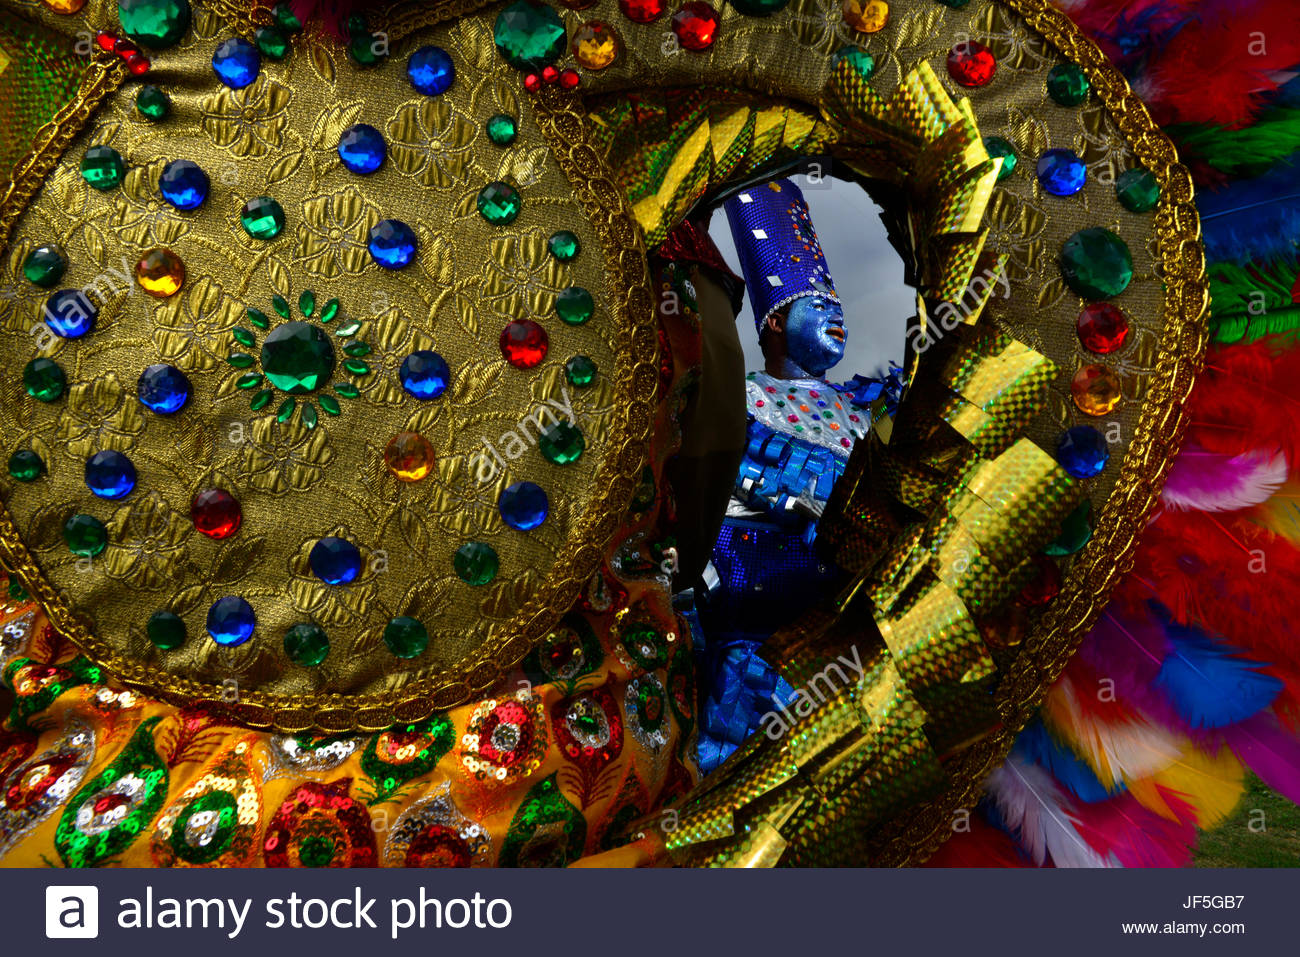 A glitzy hat and costumed people during Carnival. - Stock Image